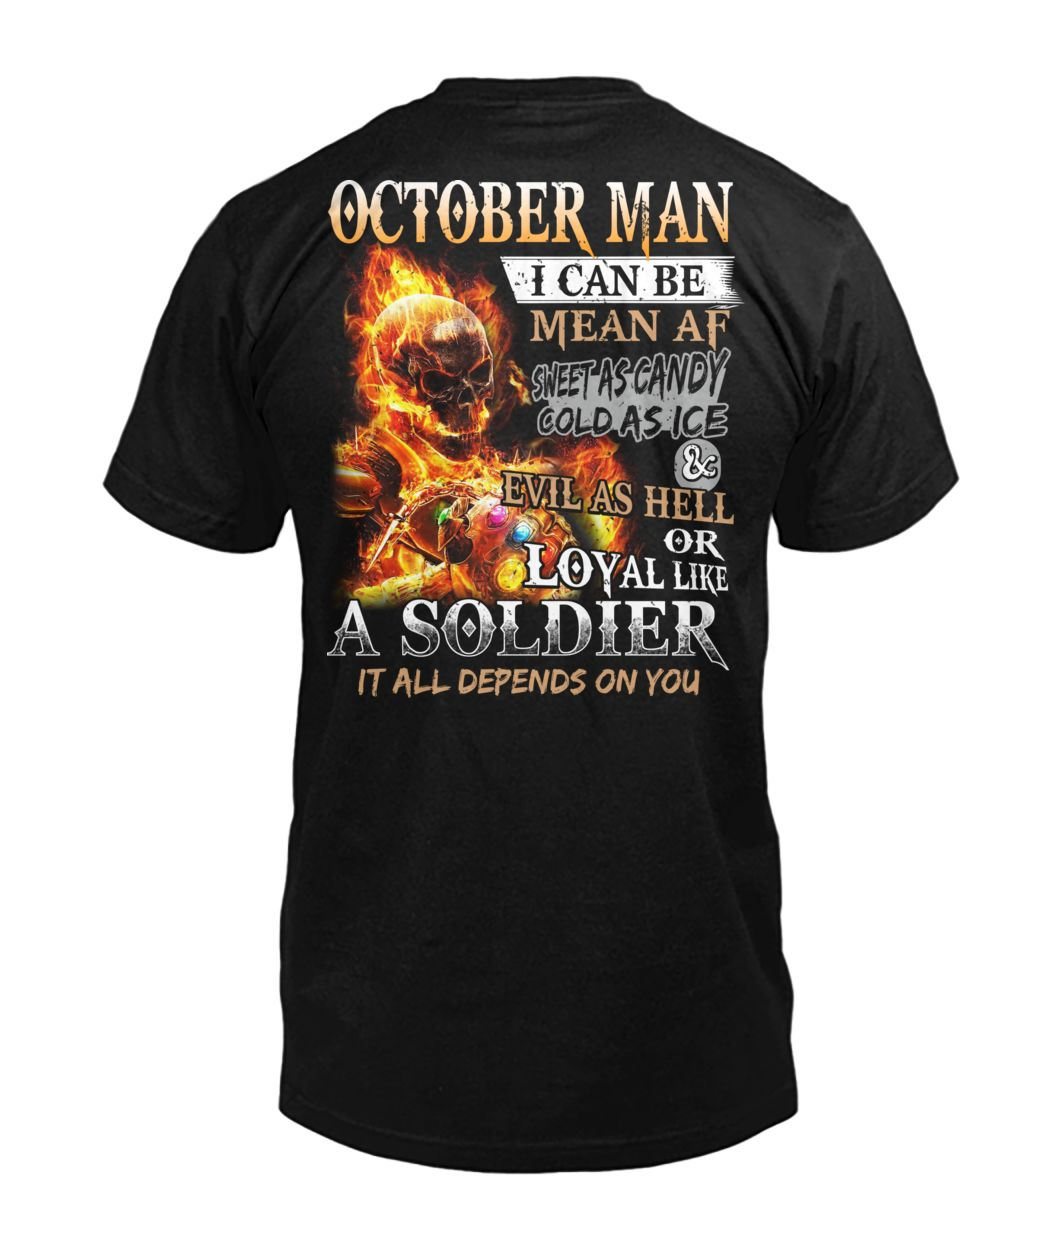 October man I can be mean af sweet as candy gold as ice and evil as hell mens v-neck